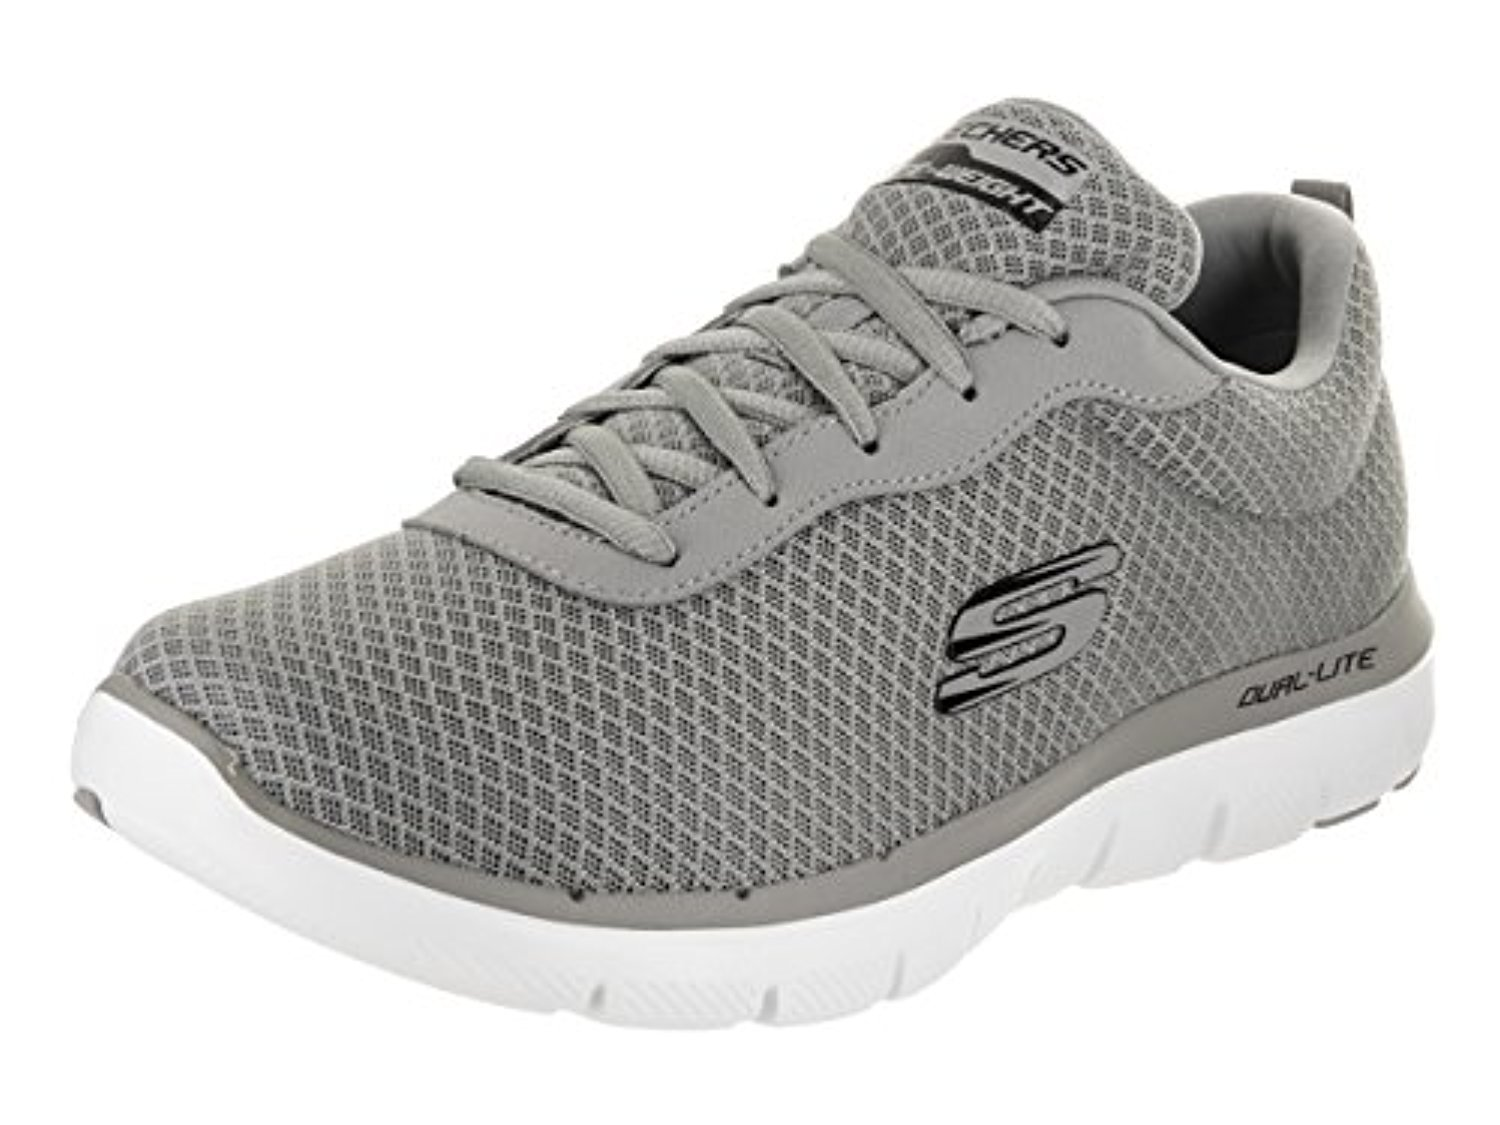 a361fa36ed6f Skechers Men s Flex Advantage 2.0 - Dayshow Casual Shoe 11 - Walmart.com